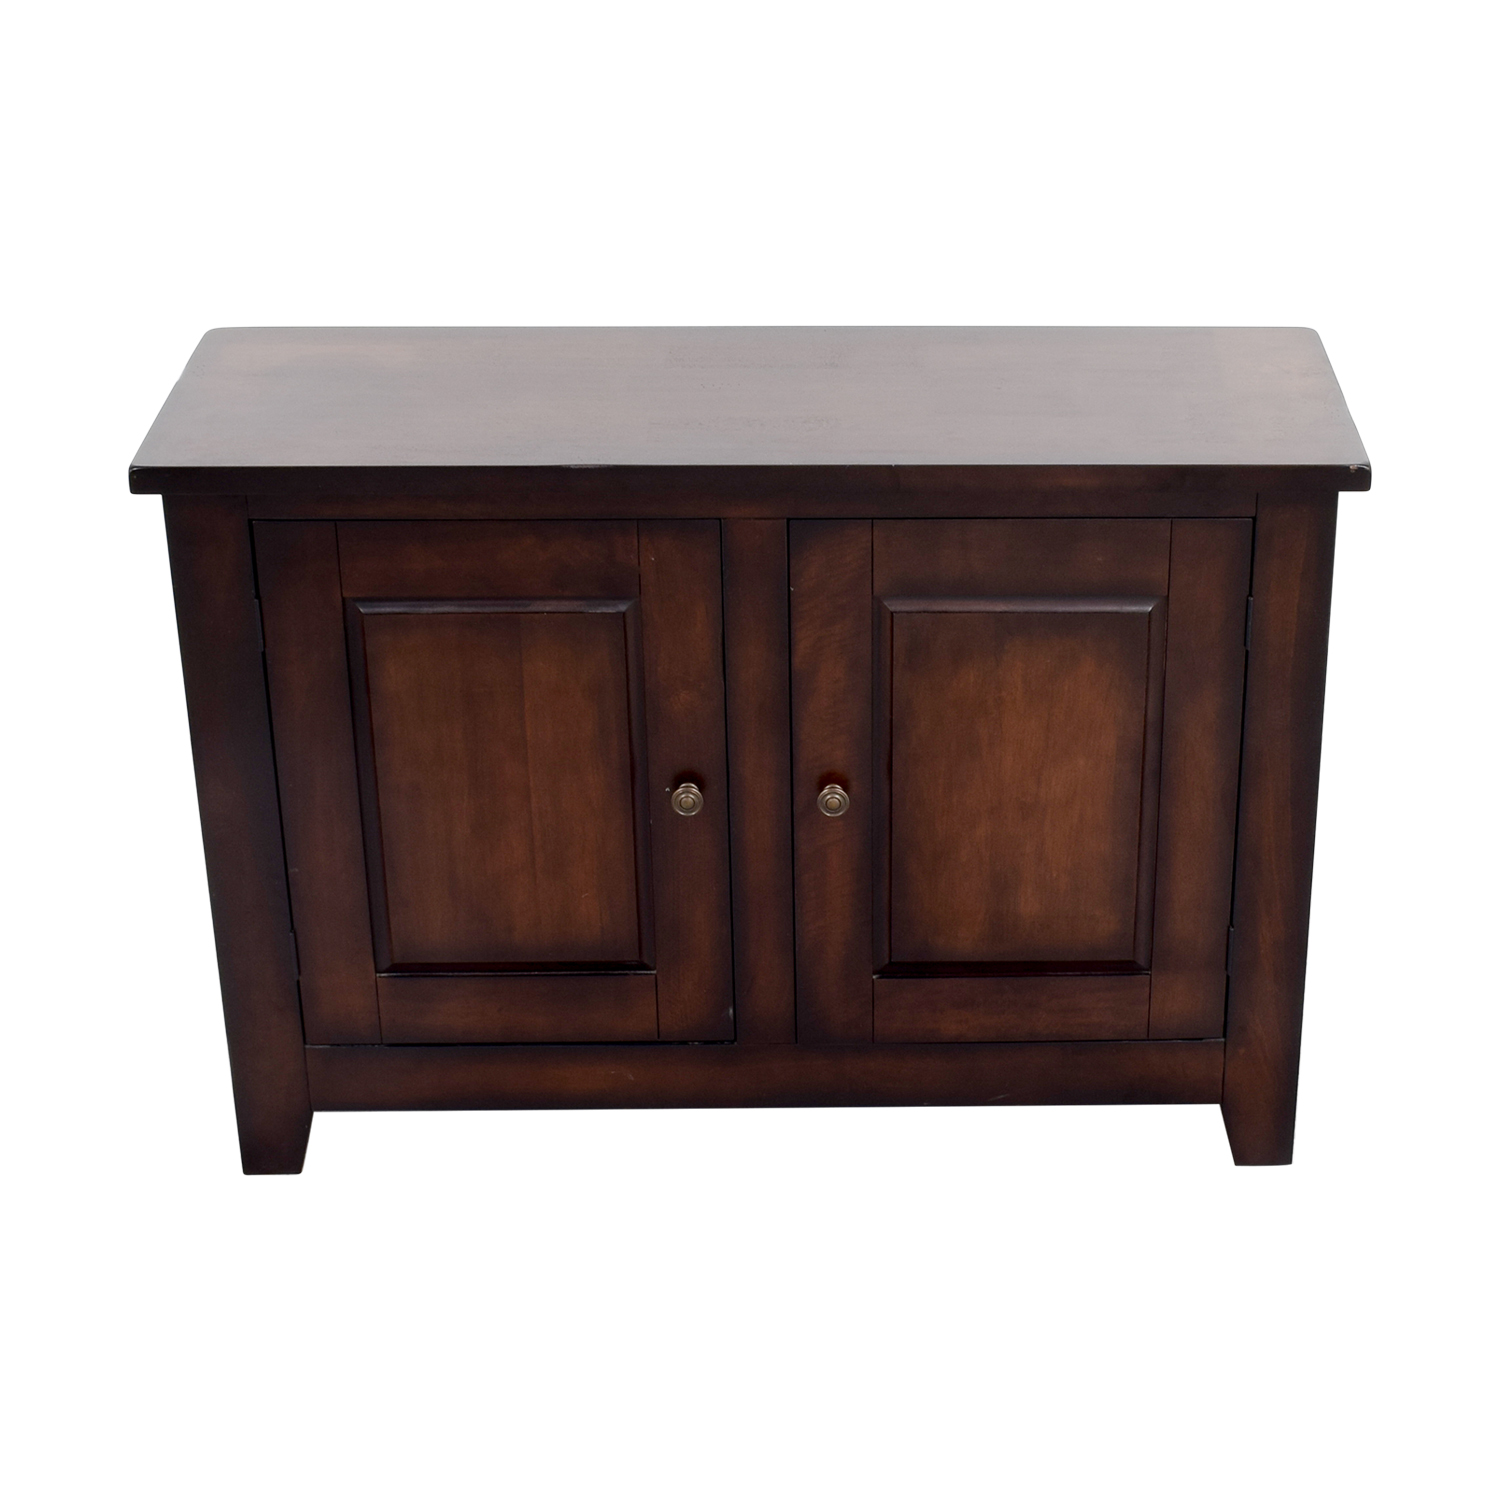 Pottery Barn Pottery Barn Credenza discount